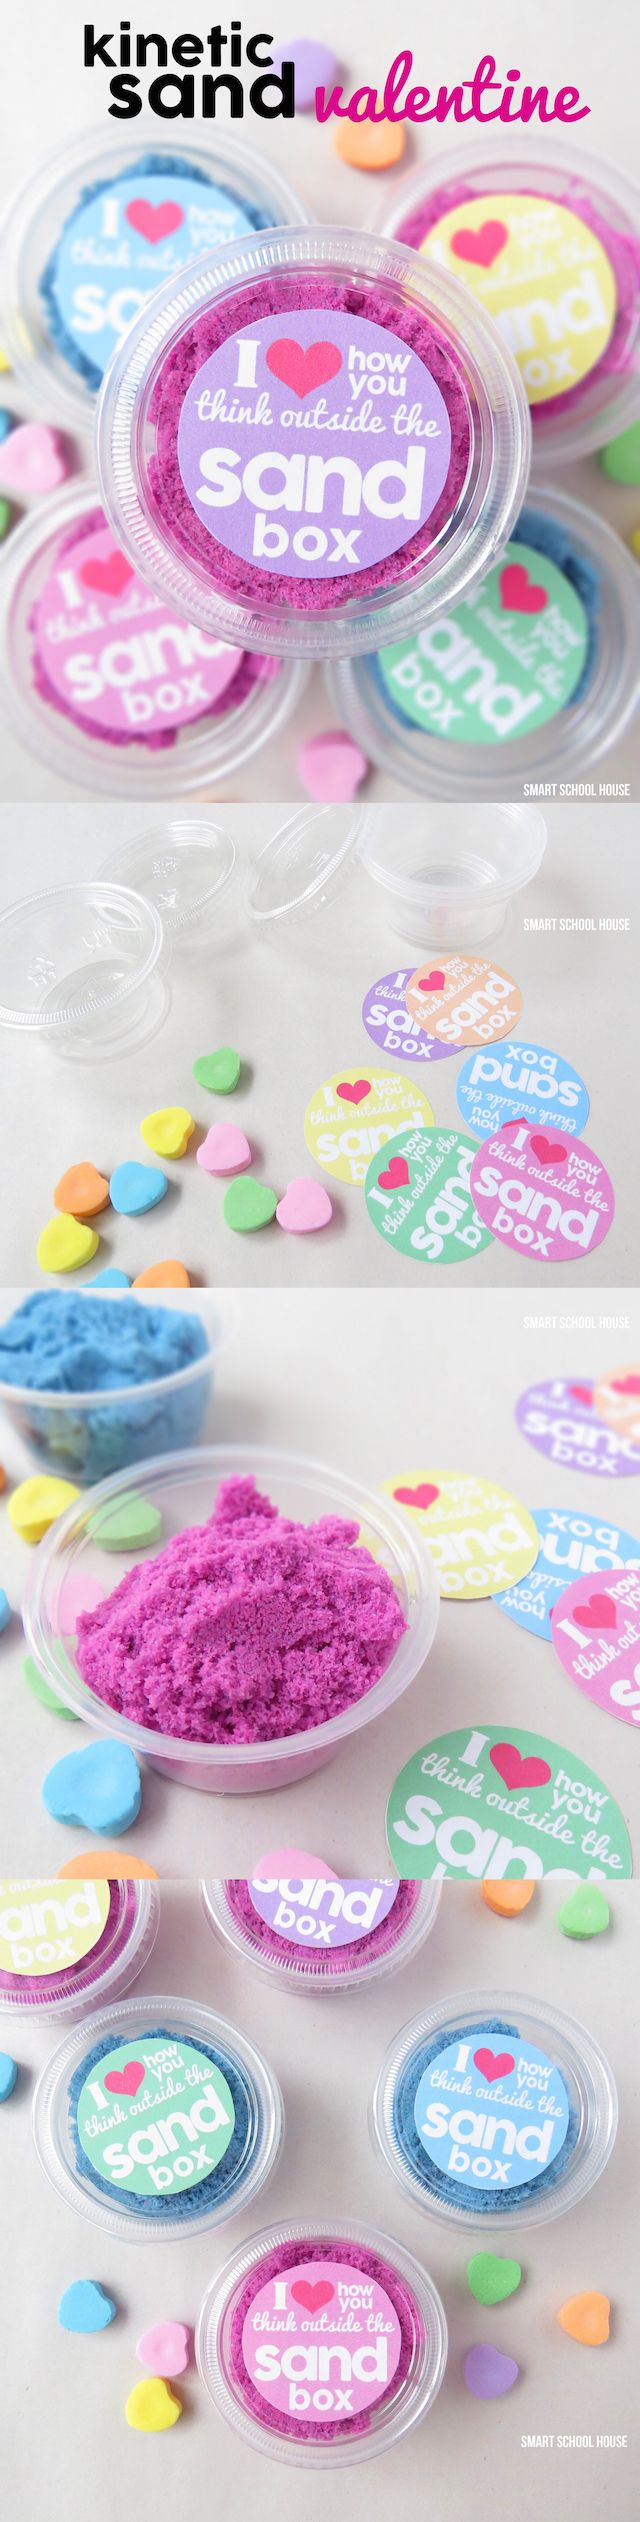 DIY Kinetic Sand Valentine with printable. A fun and easy non-candy Valentine idea for kids